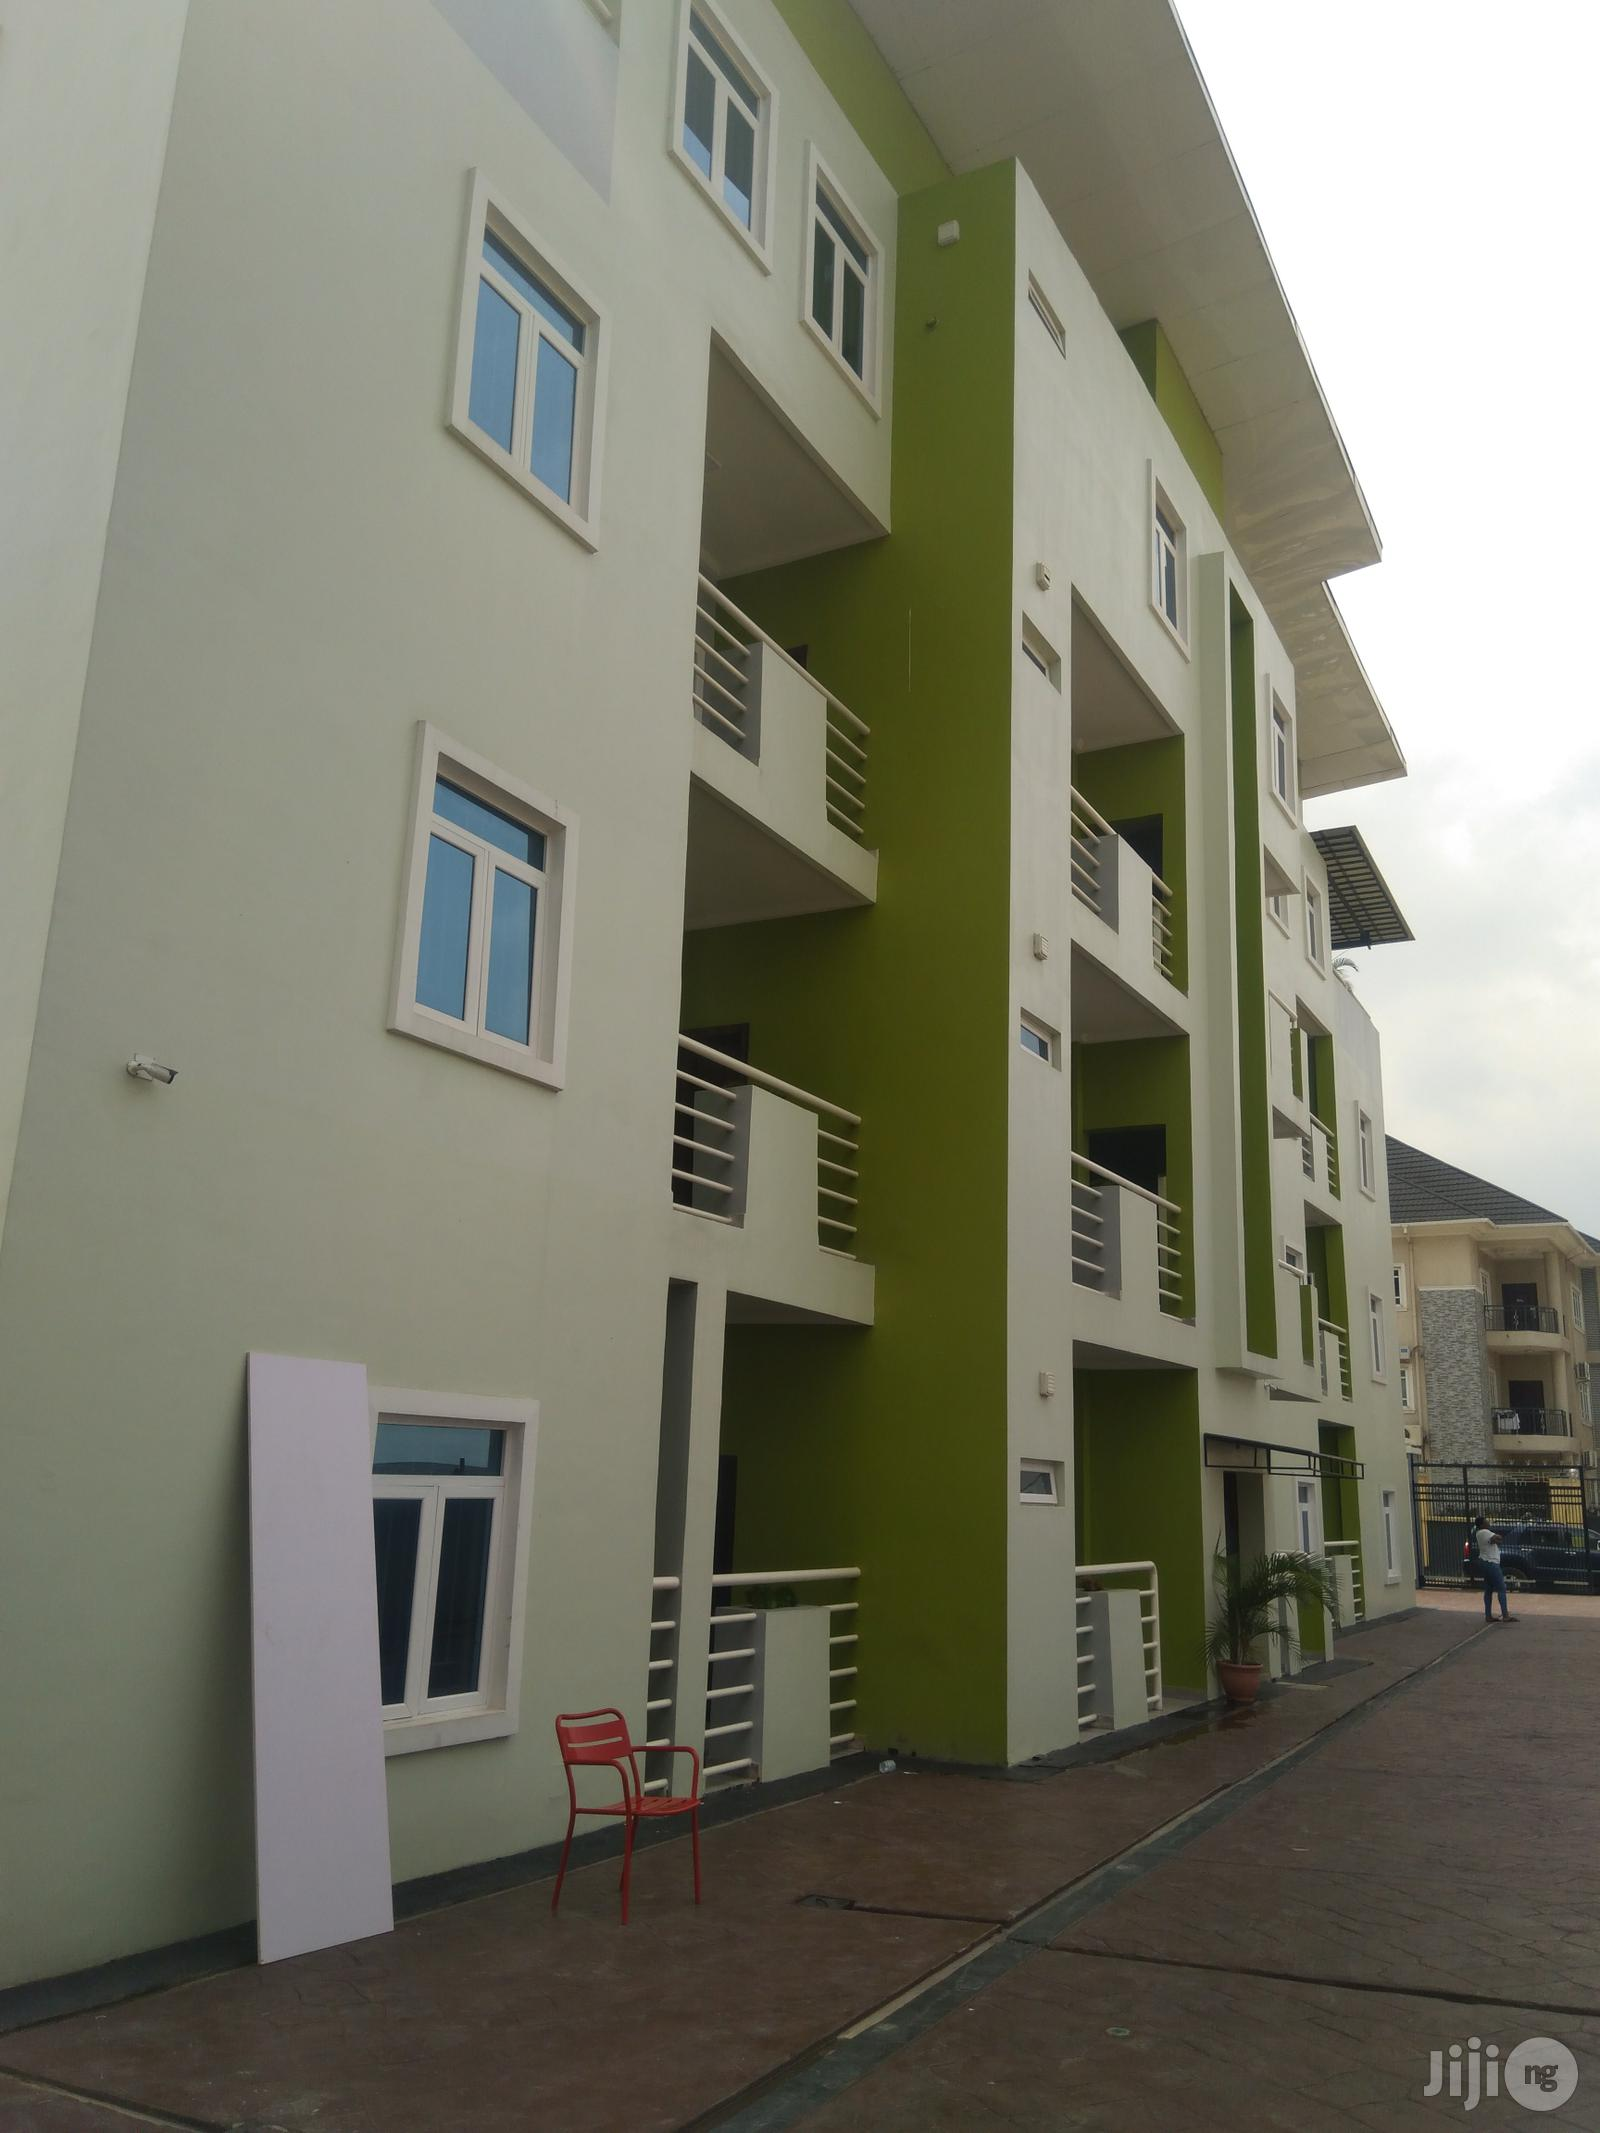 Archive: For Rent 6 Flat + BQ + 4 Bedroom P Maryland